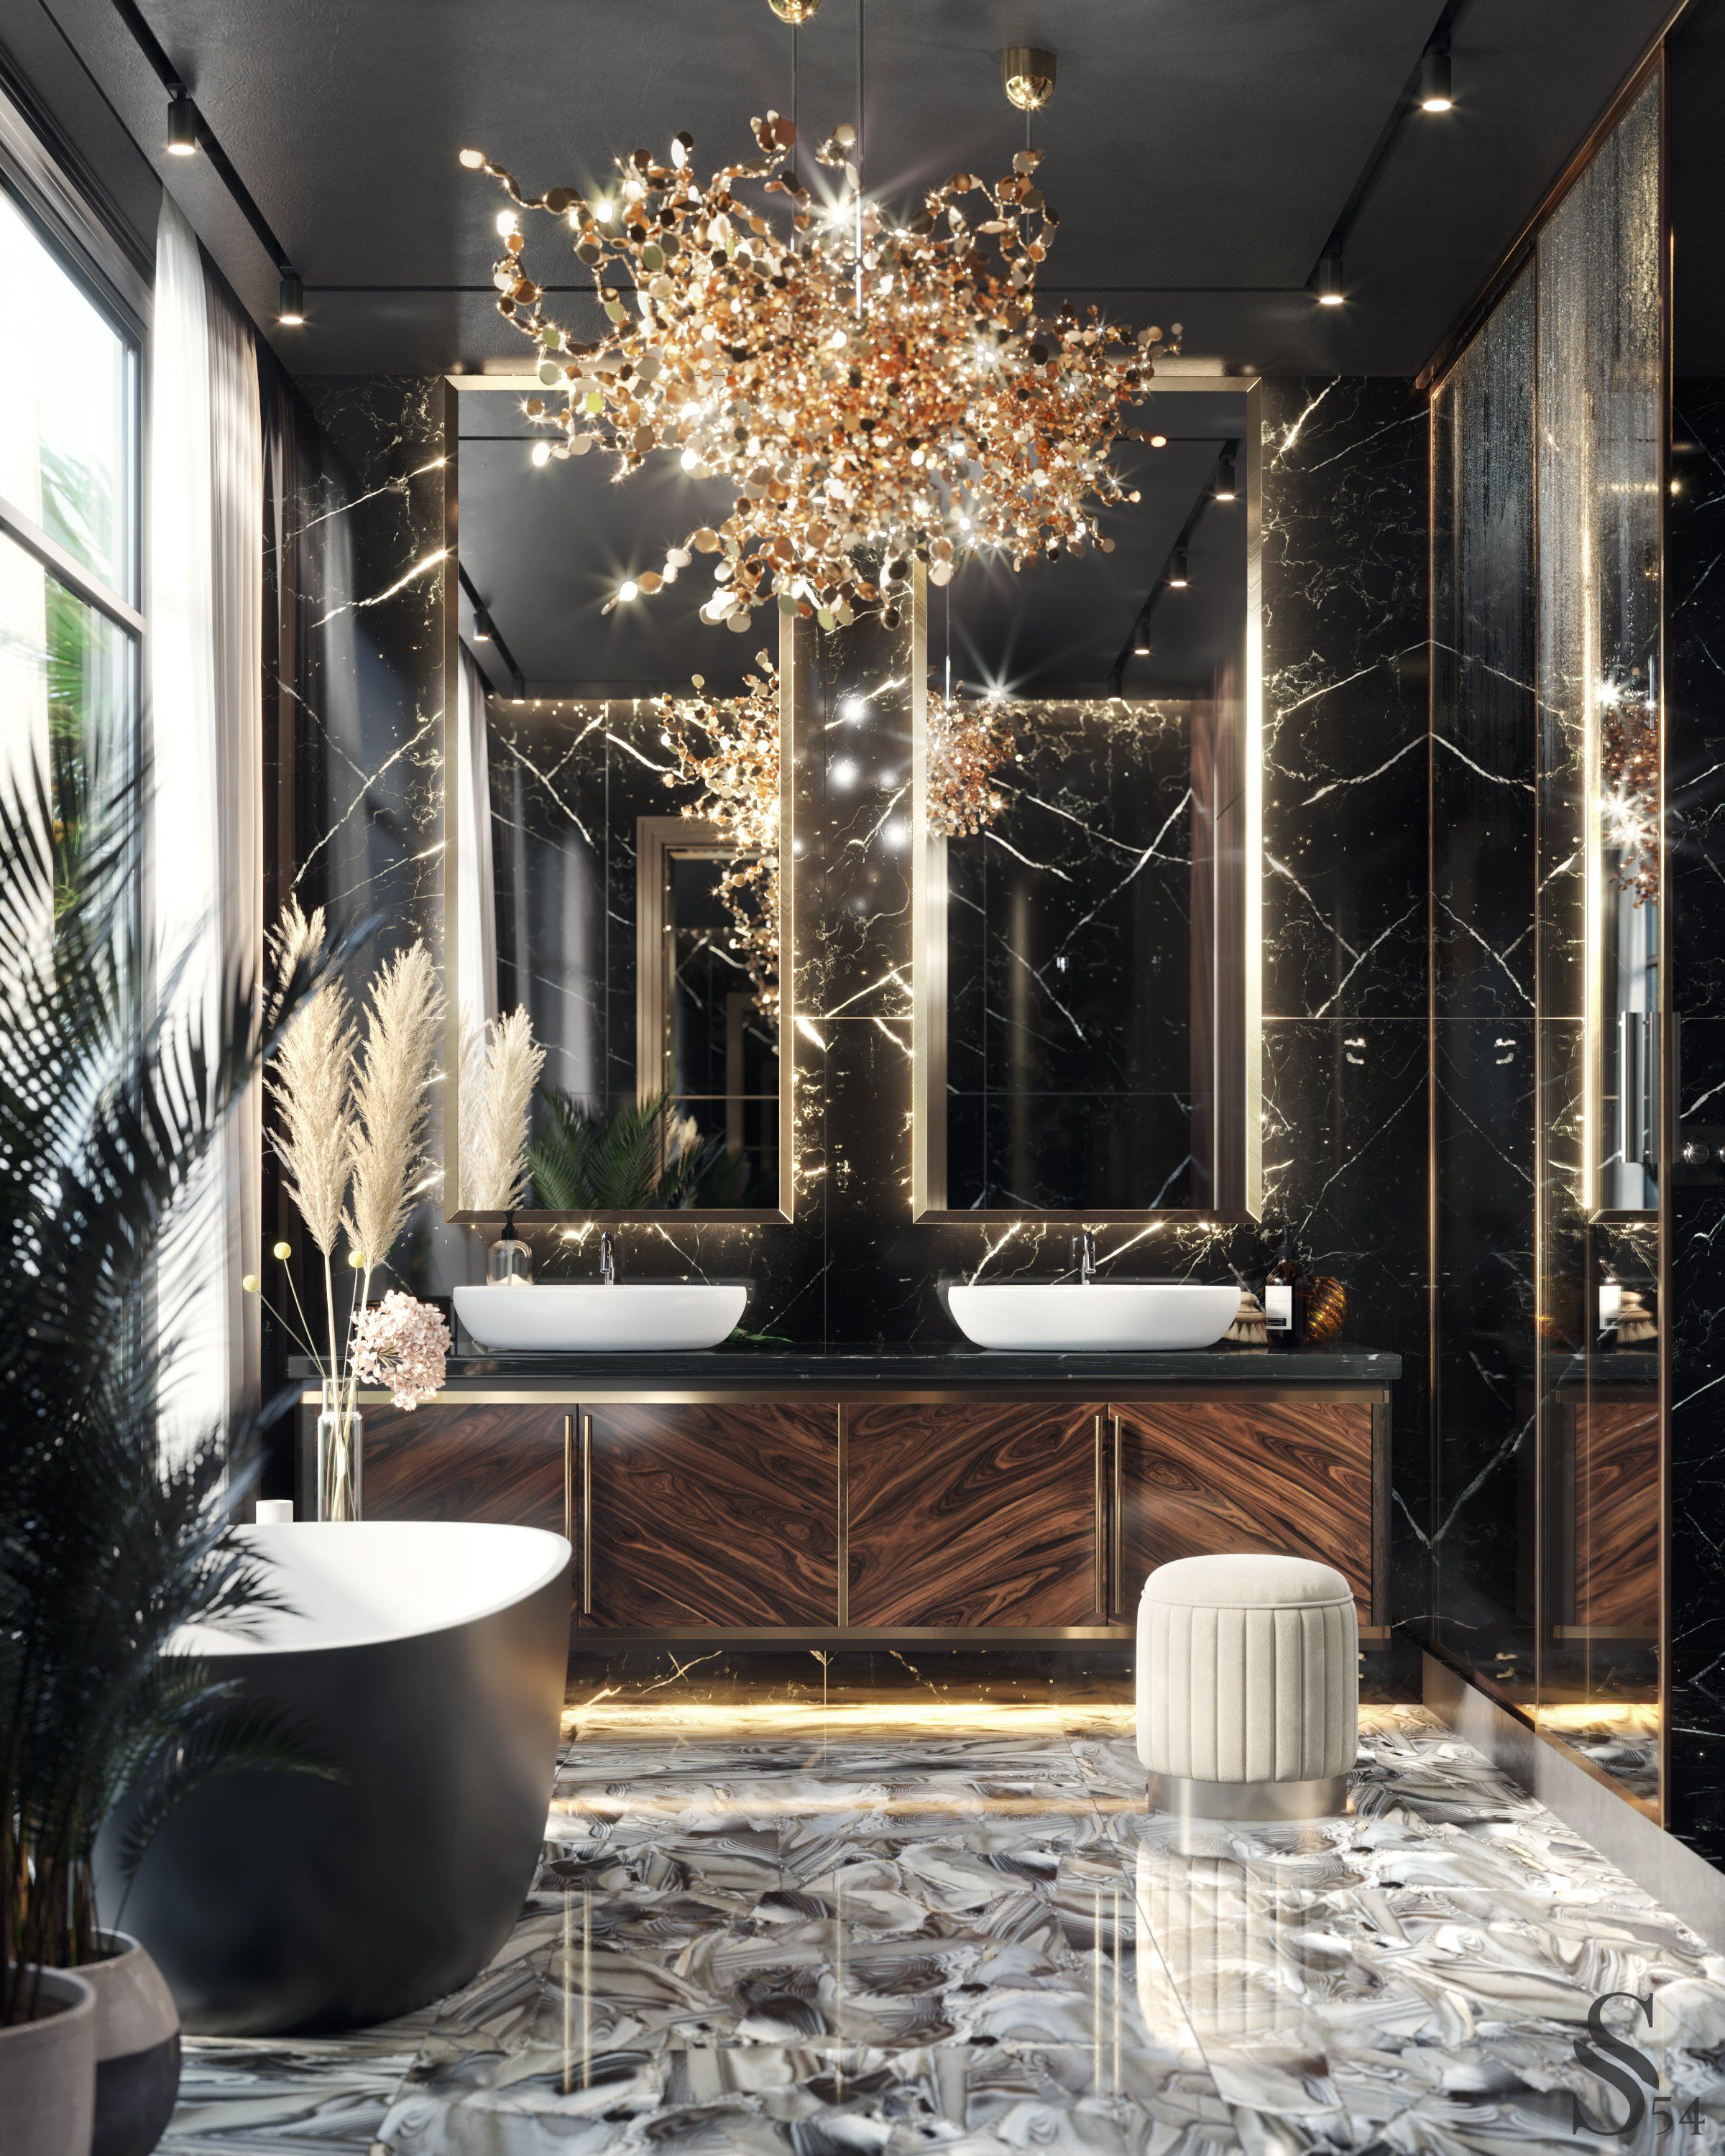 Top Projects By Studia 54 In 2020 Luxury Interior Design Luxury Interior Bathroom Interior Design